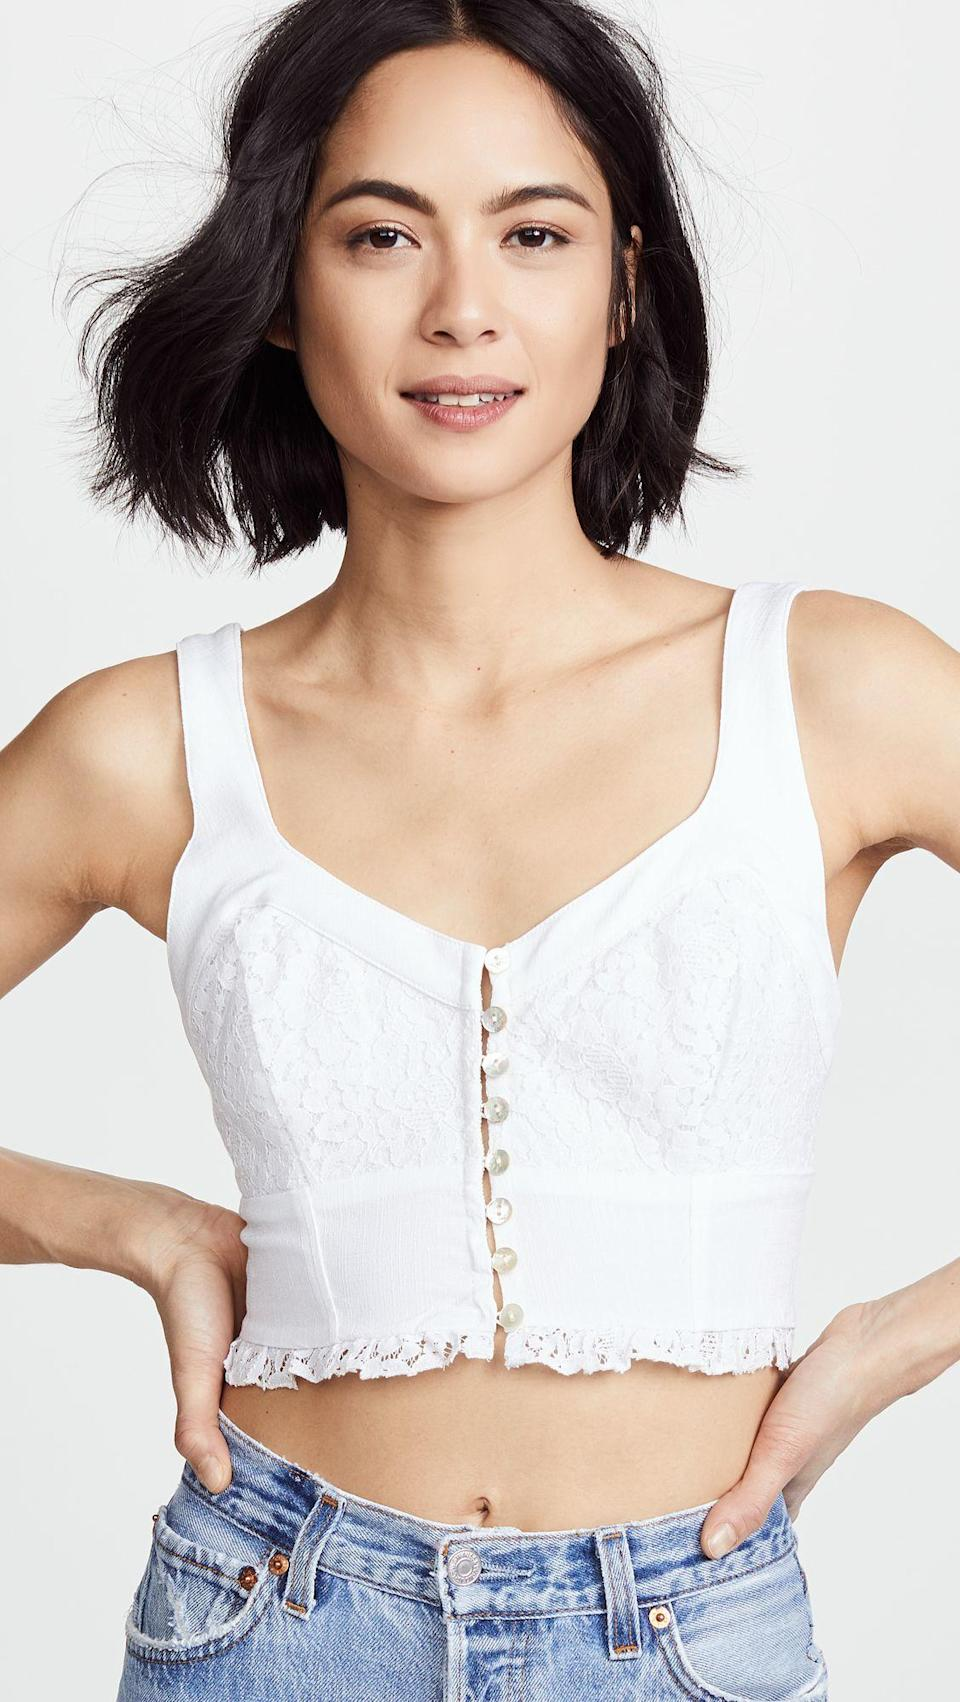 It's a bra, it's a cami, it's a brami! Available in sizes XS to L.